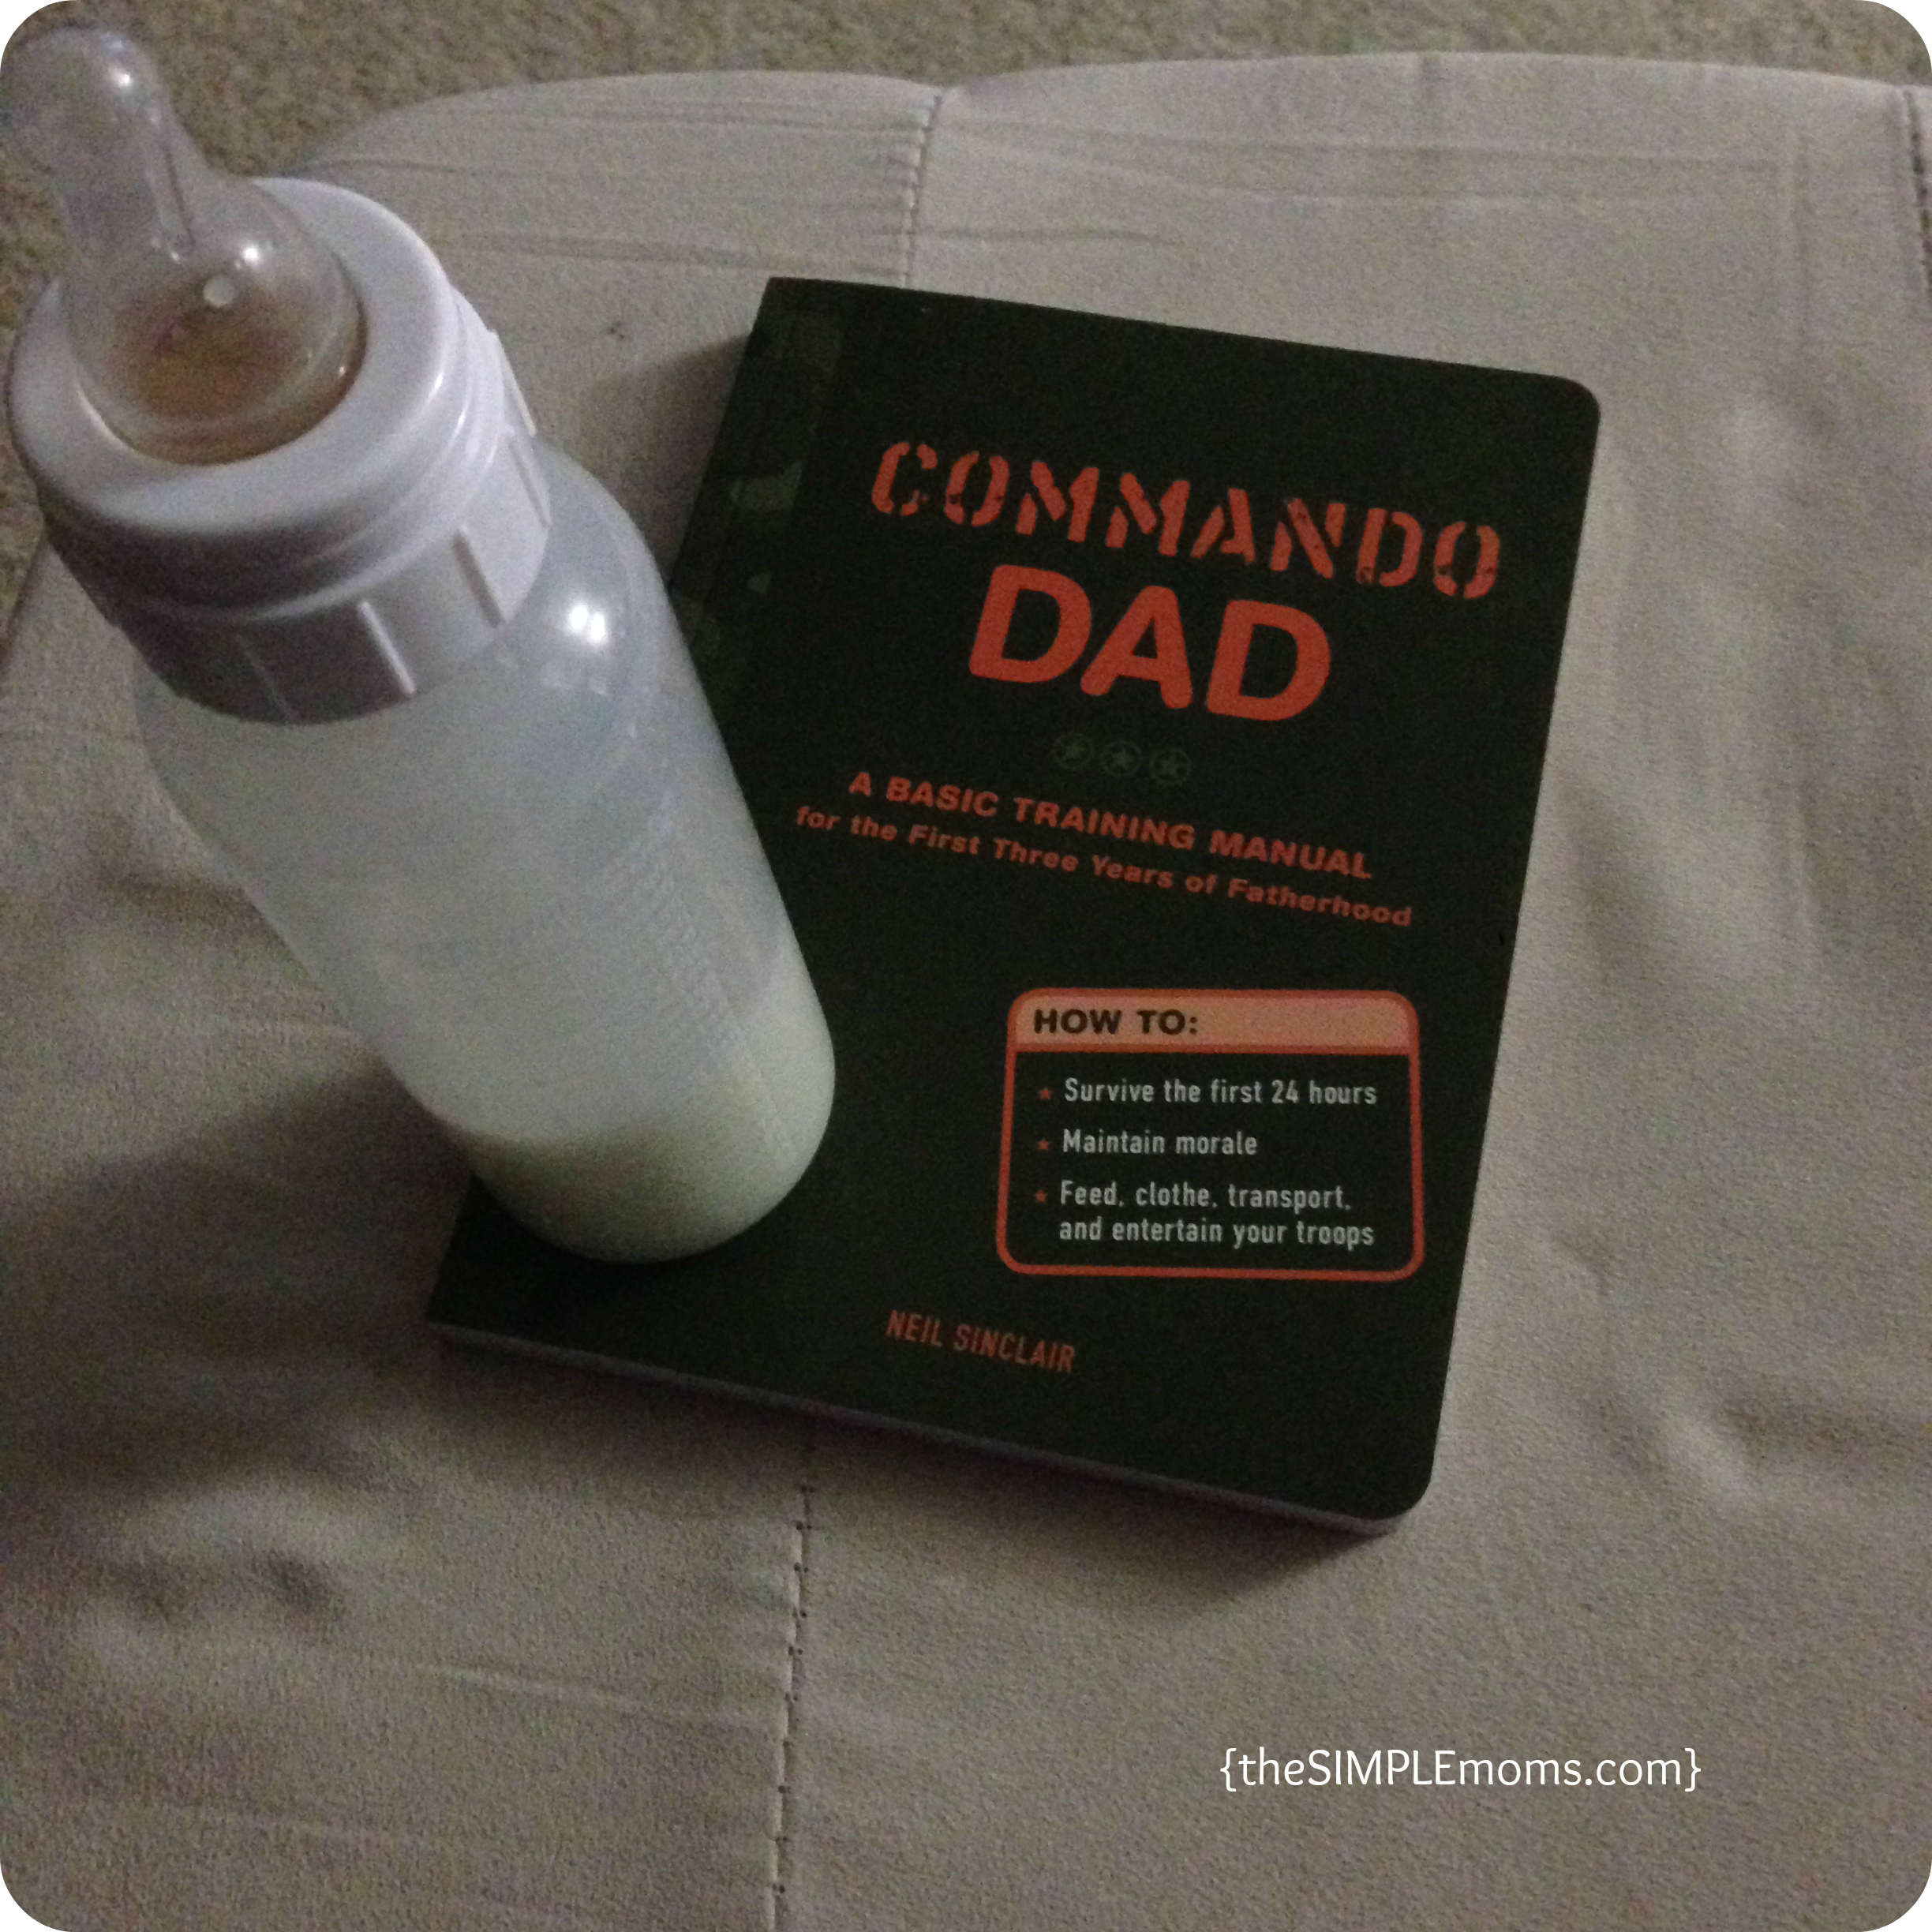 commando dad with baby bottle